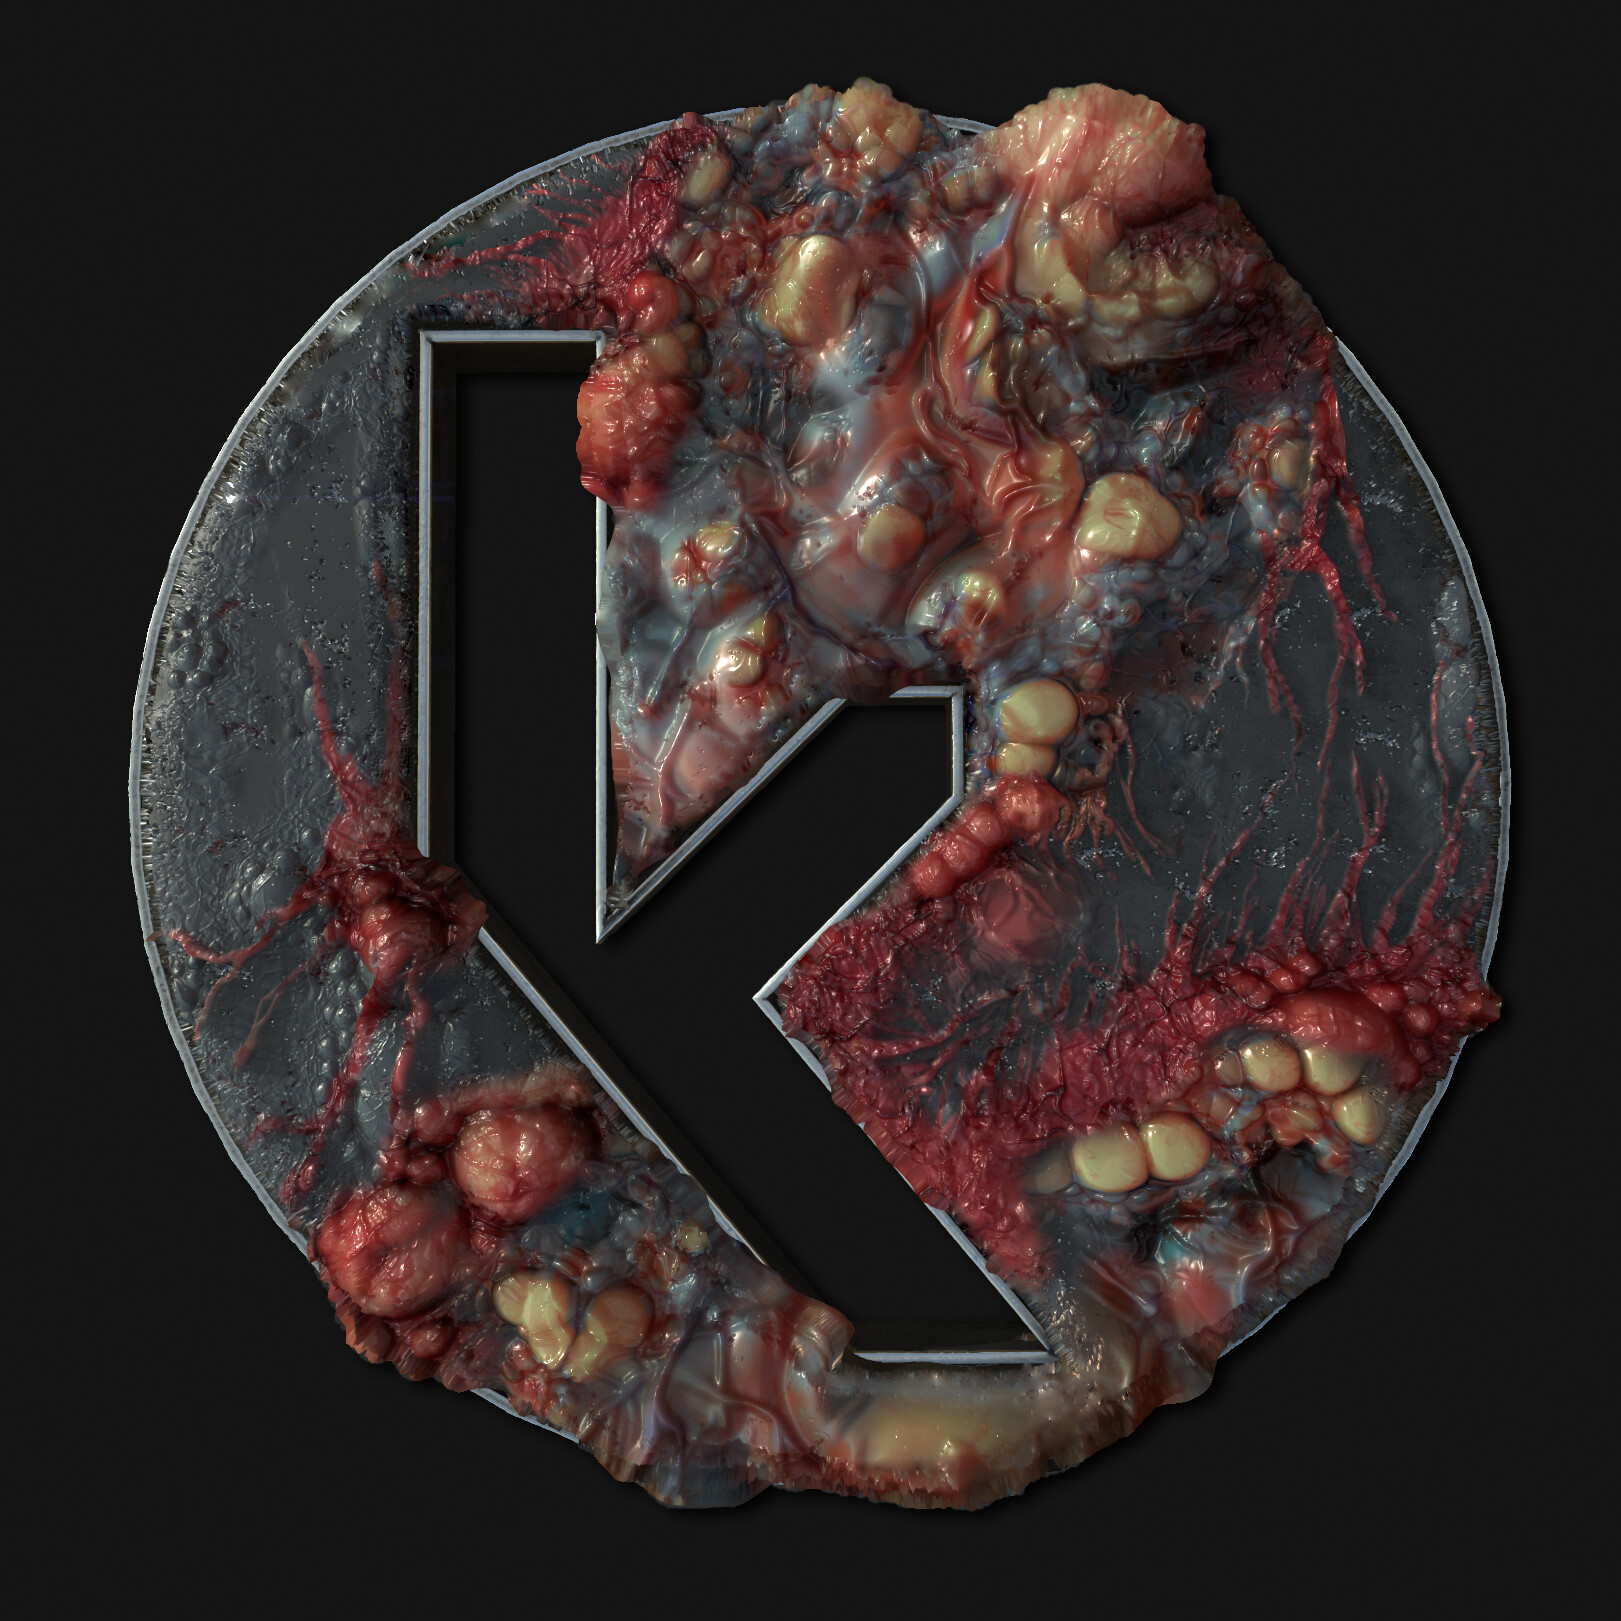 My logo as a 3D model, getting infected by procedural materials.